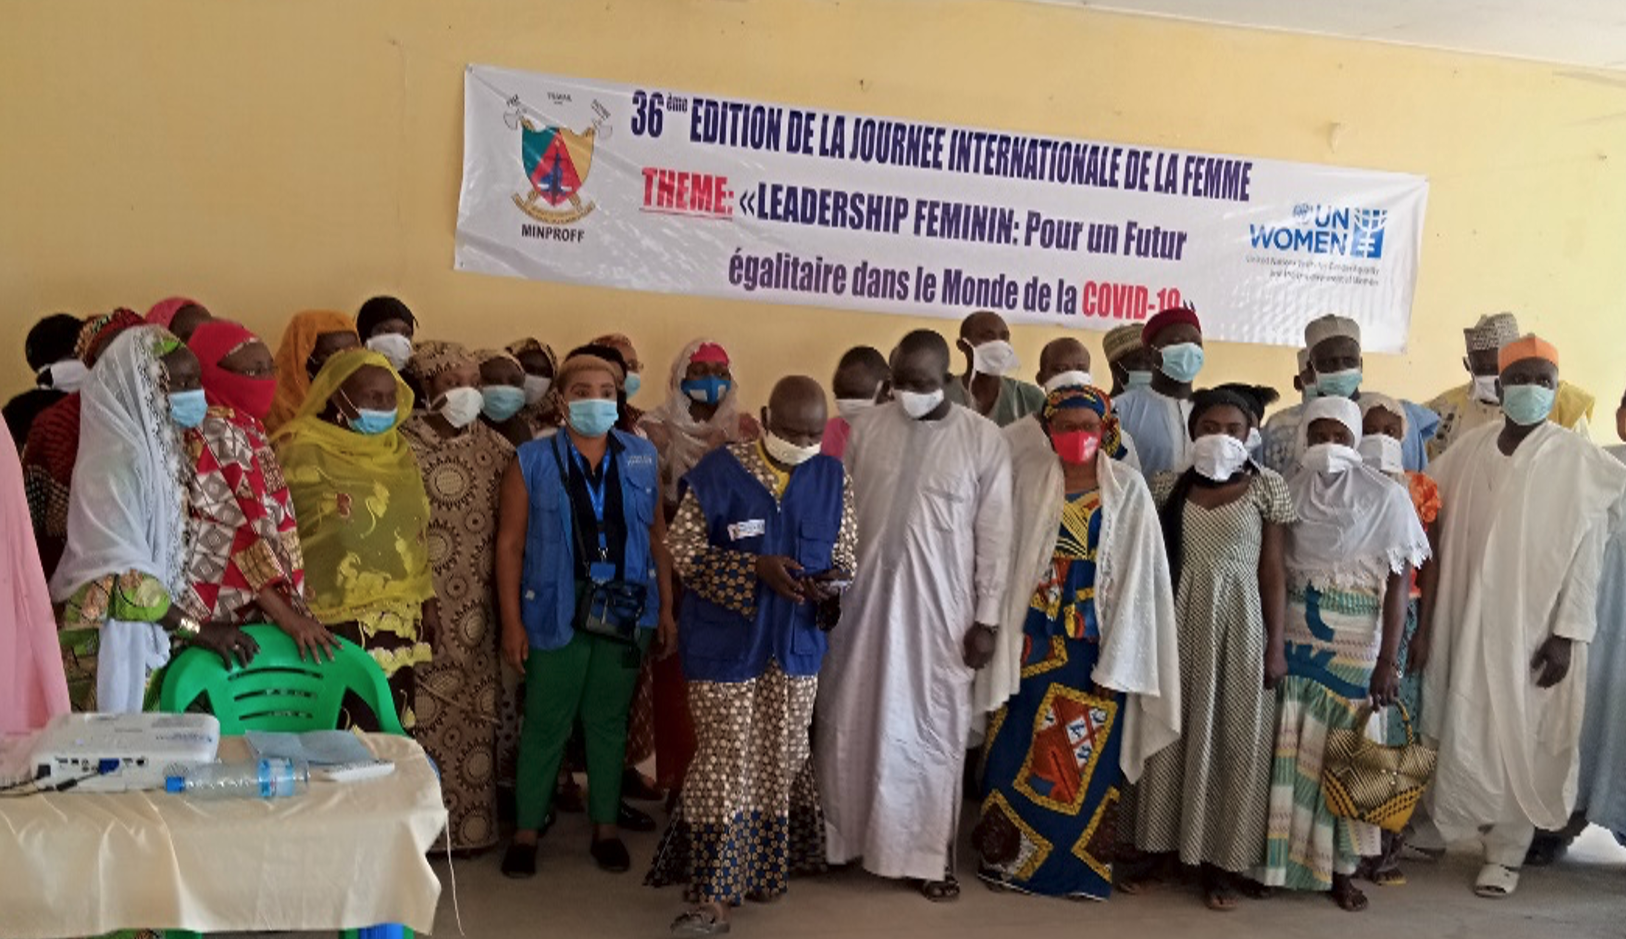 UN Women Cameroon celebrate the 36th edition of the International Women's Day in Conflict affected areas 4-19 of March 2021